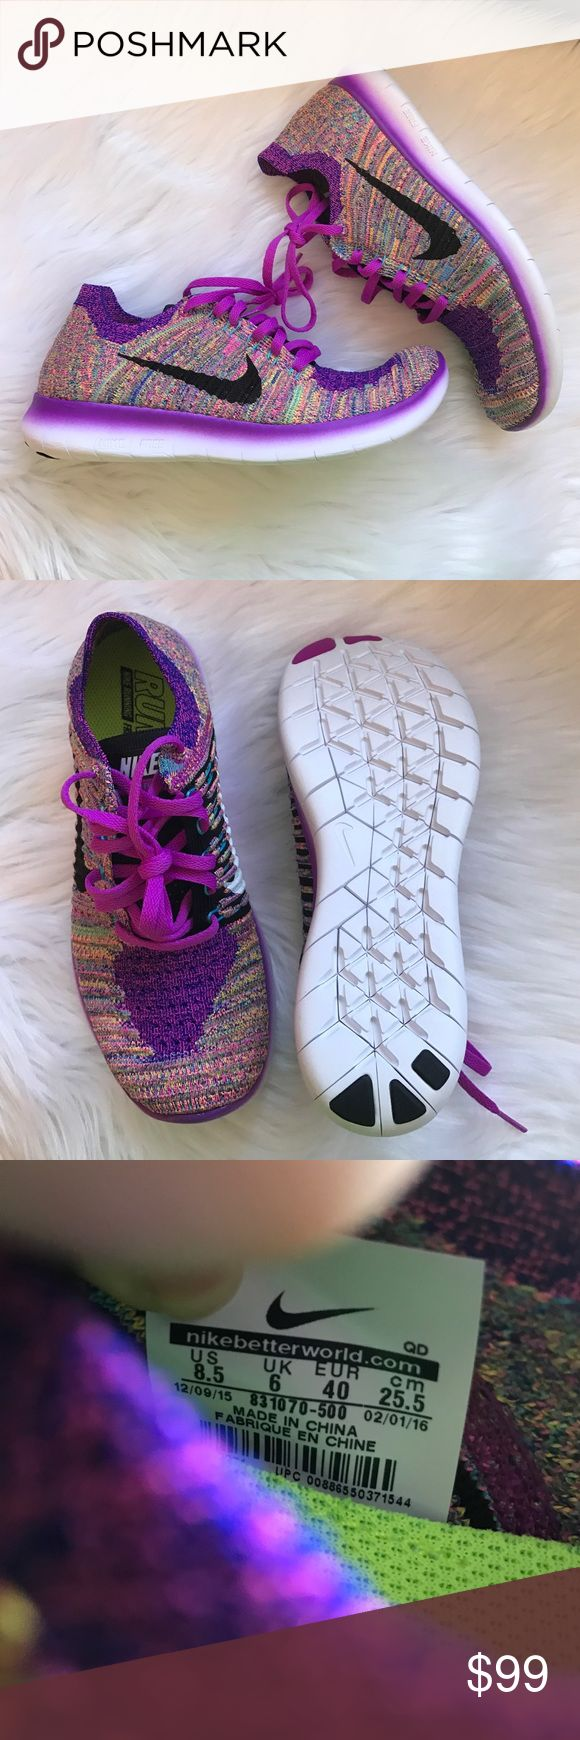 Nike Free Run Flyknit Sneakers Woman's Nike Free Run Flyknit Sneakers Purple multicolor with a black swoosh on the outside, white on the inside of the shoe Style: 831070-500 New with original box, no lid UPC will vary with size Nike Shoes Sneakers